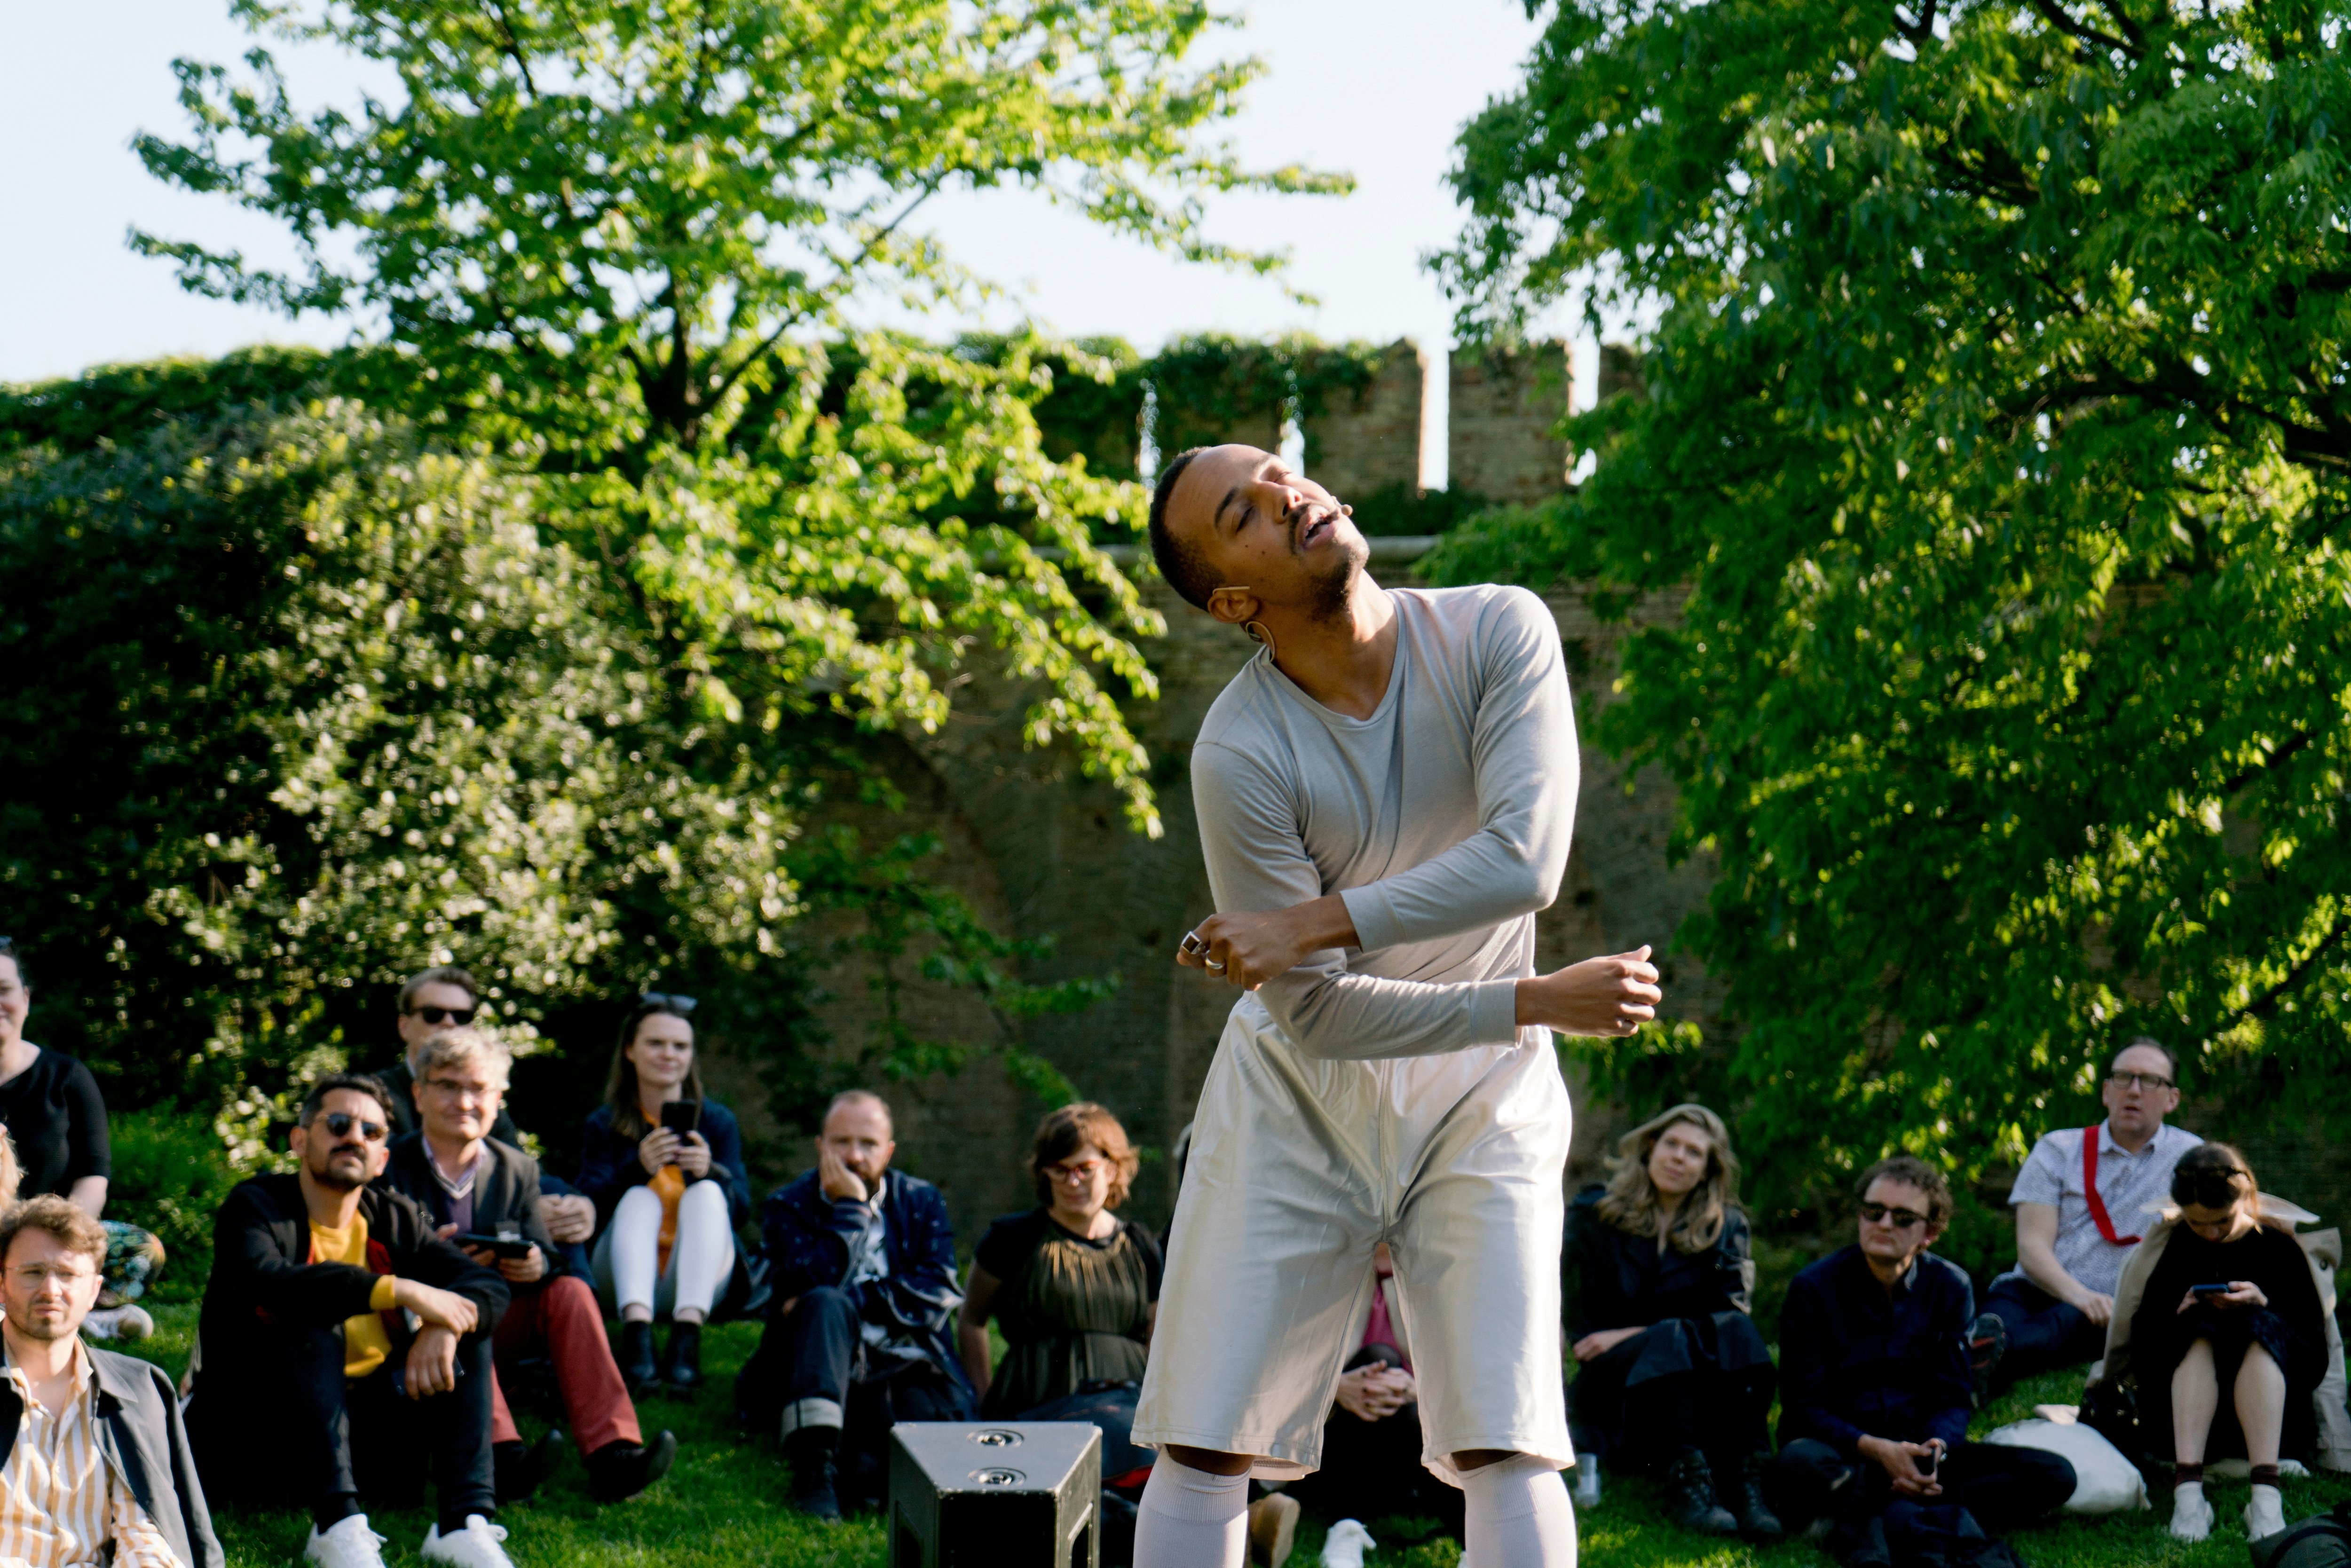 Paul Maheke, Seeking After the Fully Grown Dancer deep within (2016–2018). Performance part of Meetings on Art, May You Live In Interesting Times, The 58th International Art Exhibition – la Biennale di Venezia (11 May–24 November 2019). Courtesy Delfina Foundation and Arts Council England. Photo: Riccardo Banfi.